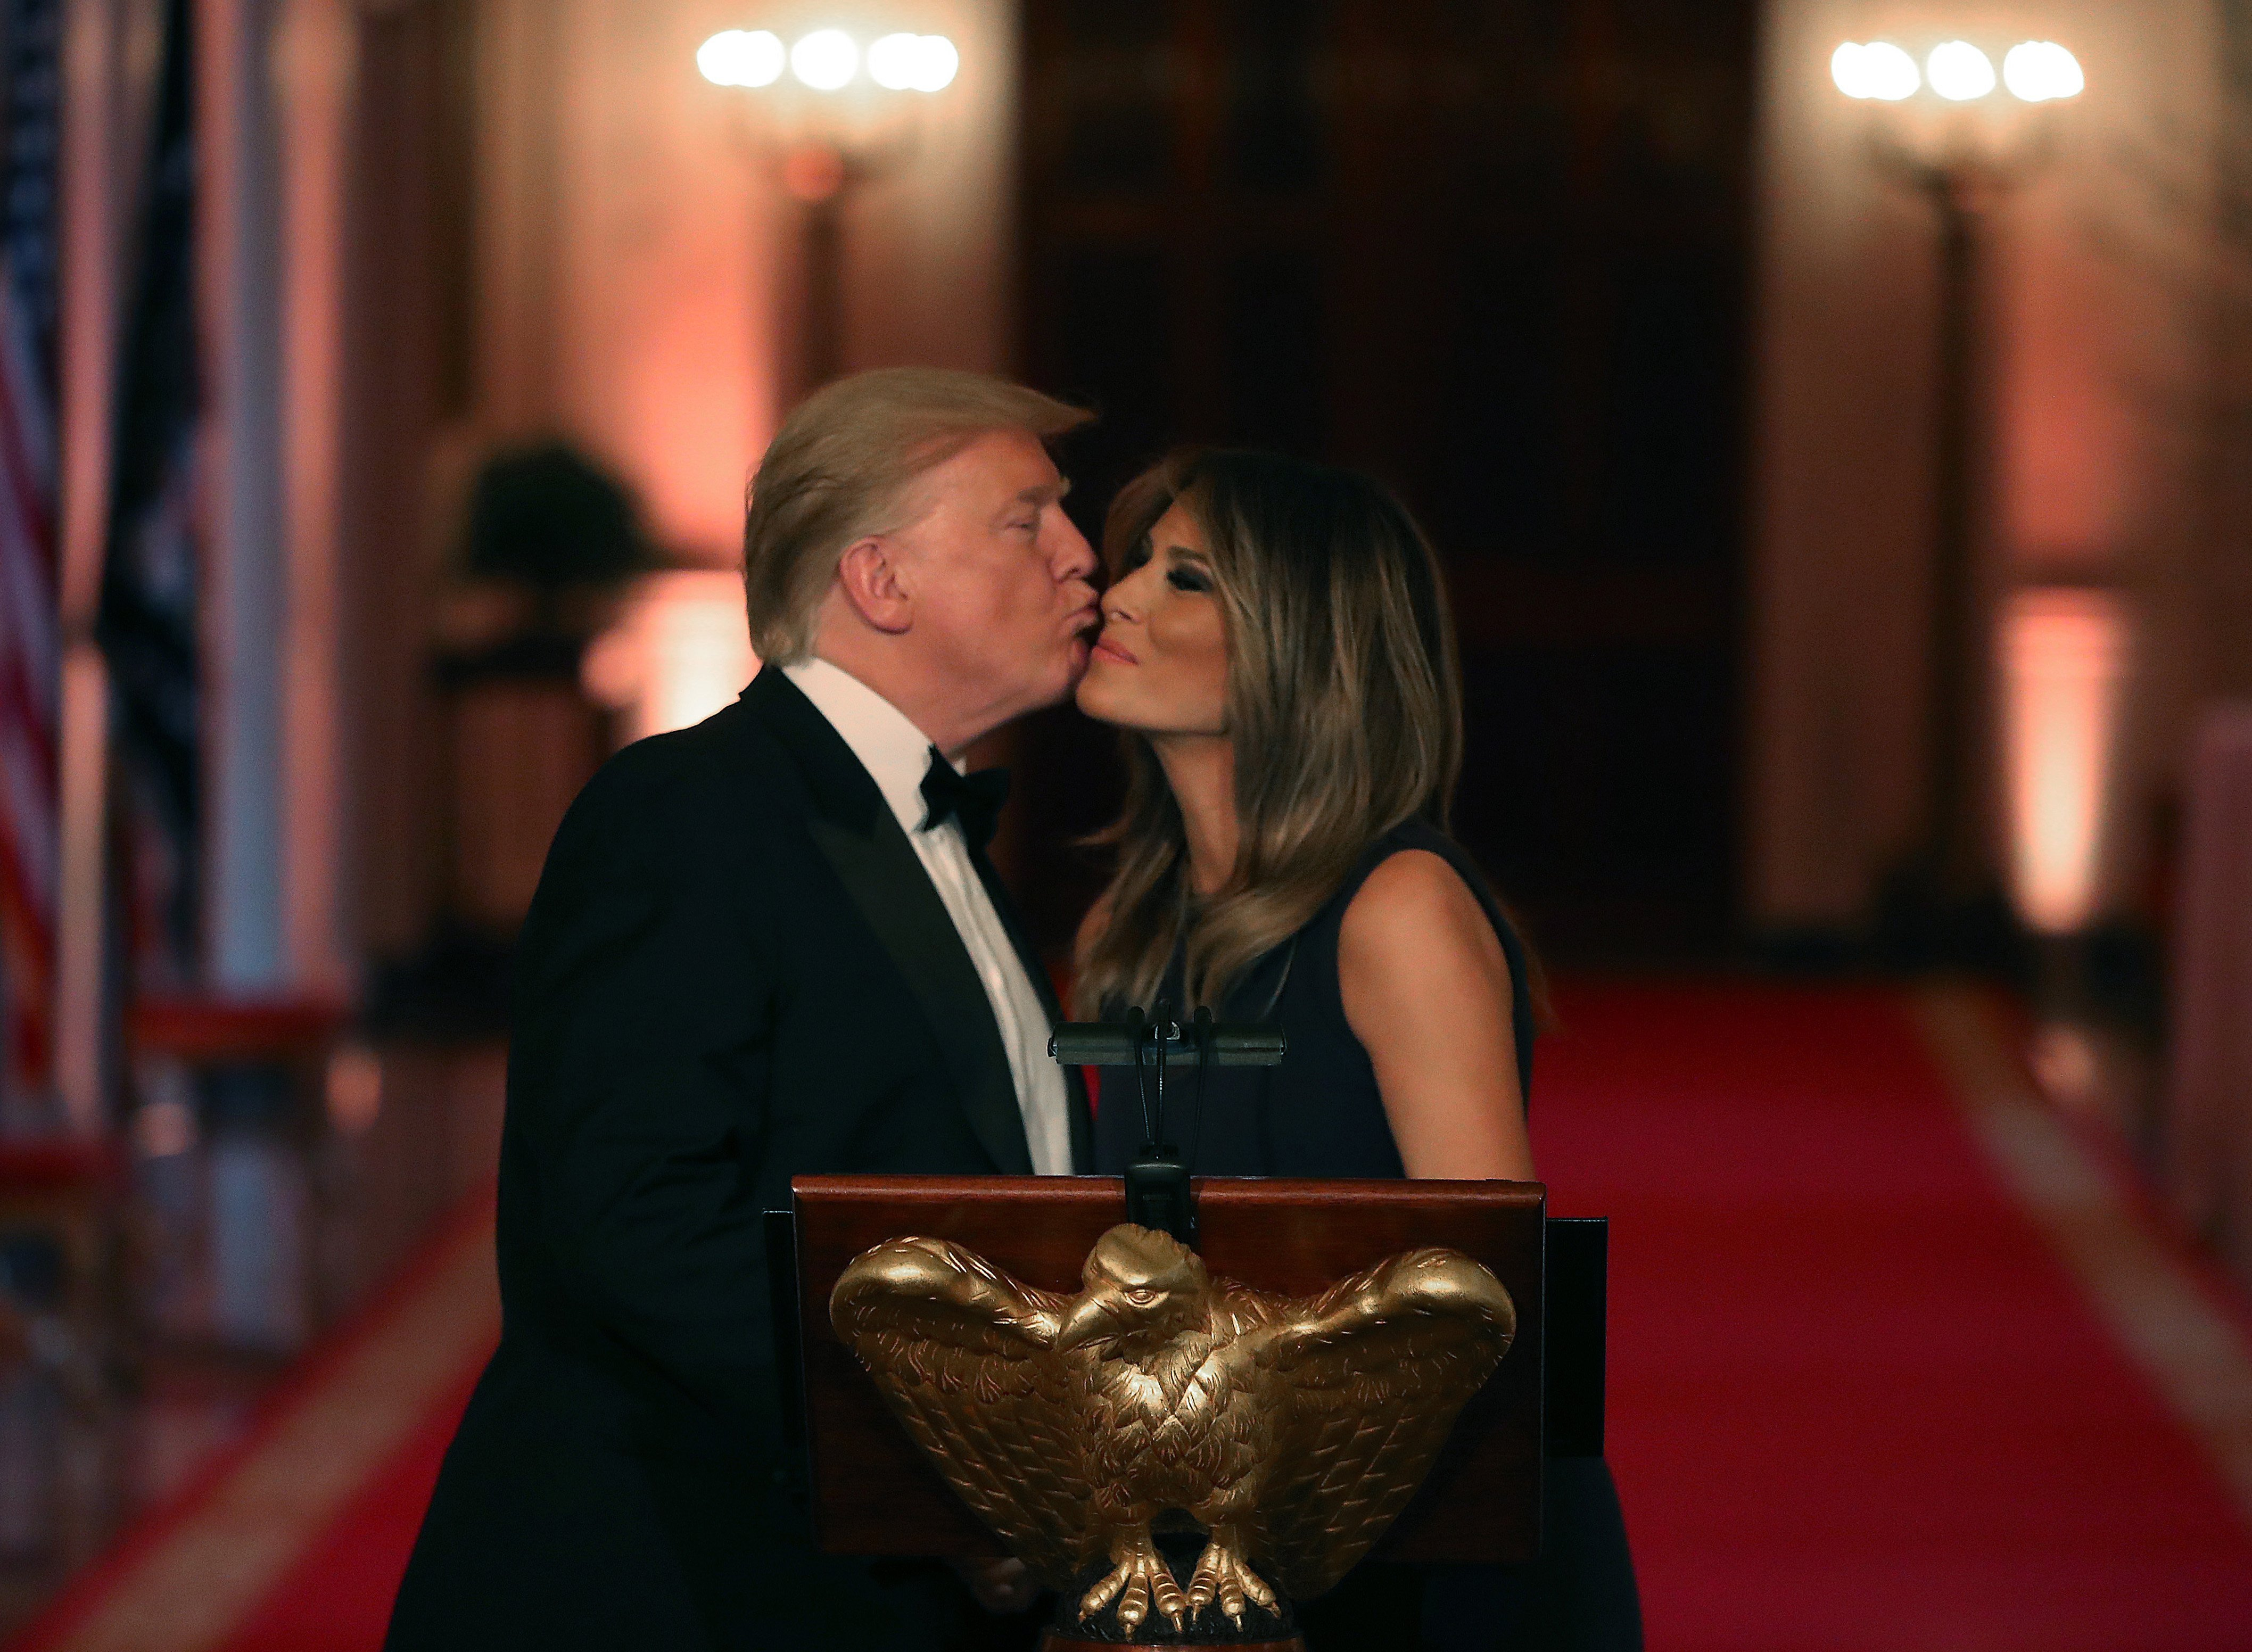 President Donald Trump and First Lady Melania Trump U.S. President Donald Trump and first lady Melania Trump at the White House Historical Association Dinner | Photo: Getty Images